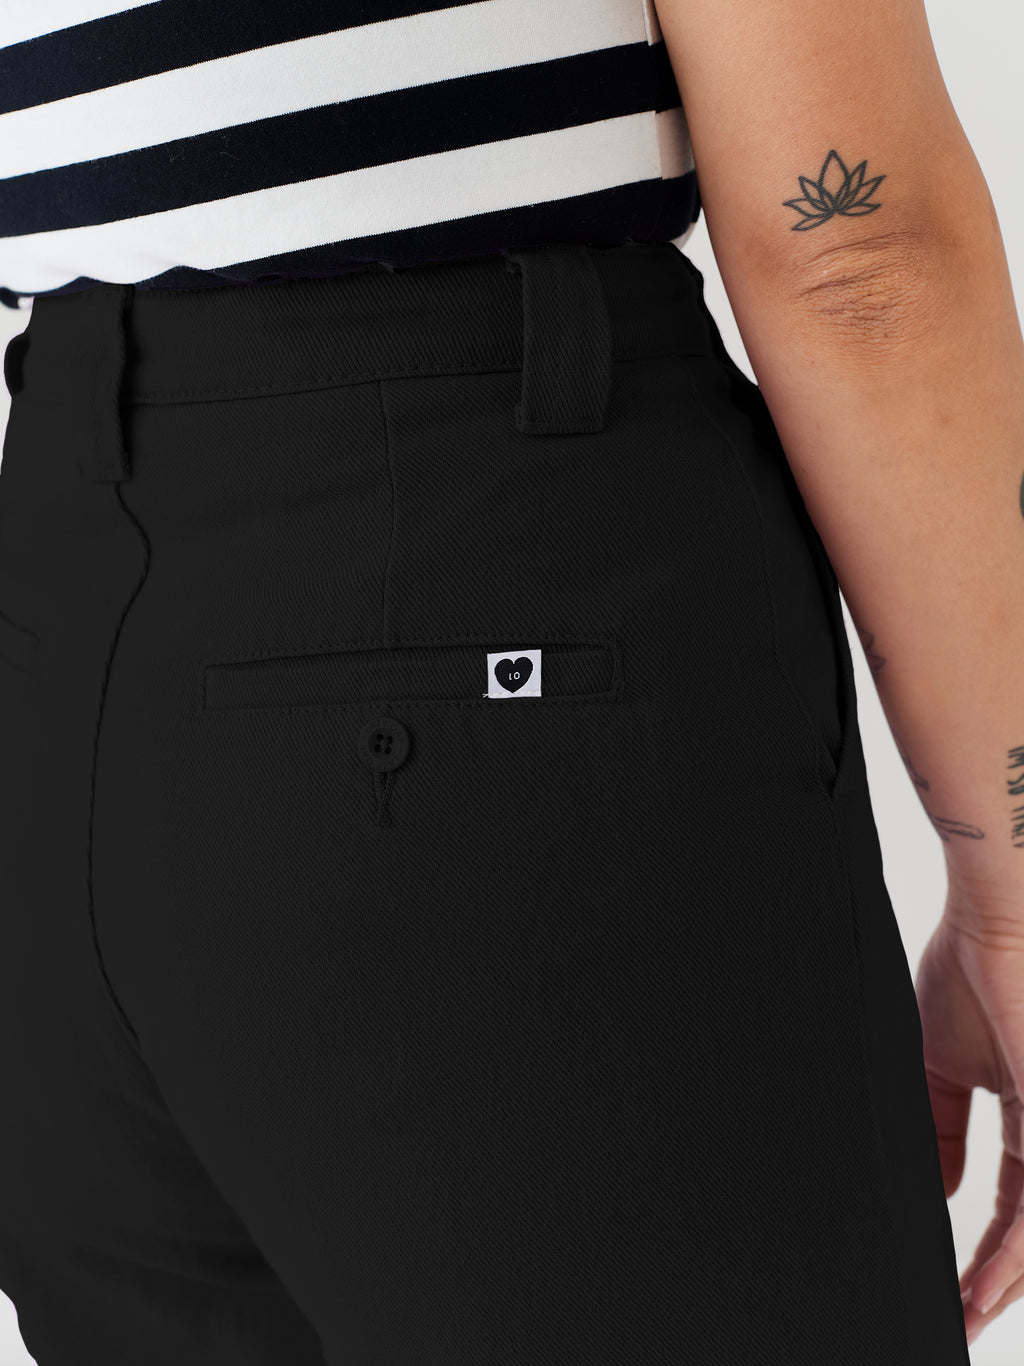 LO Black Work Pants